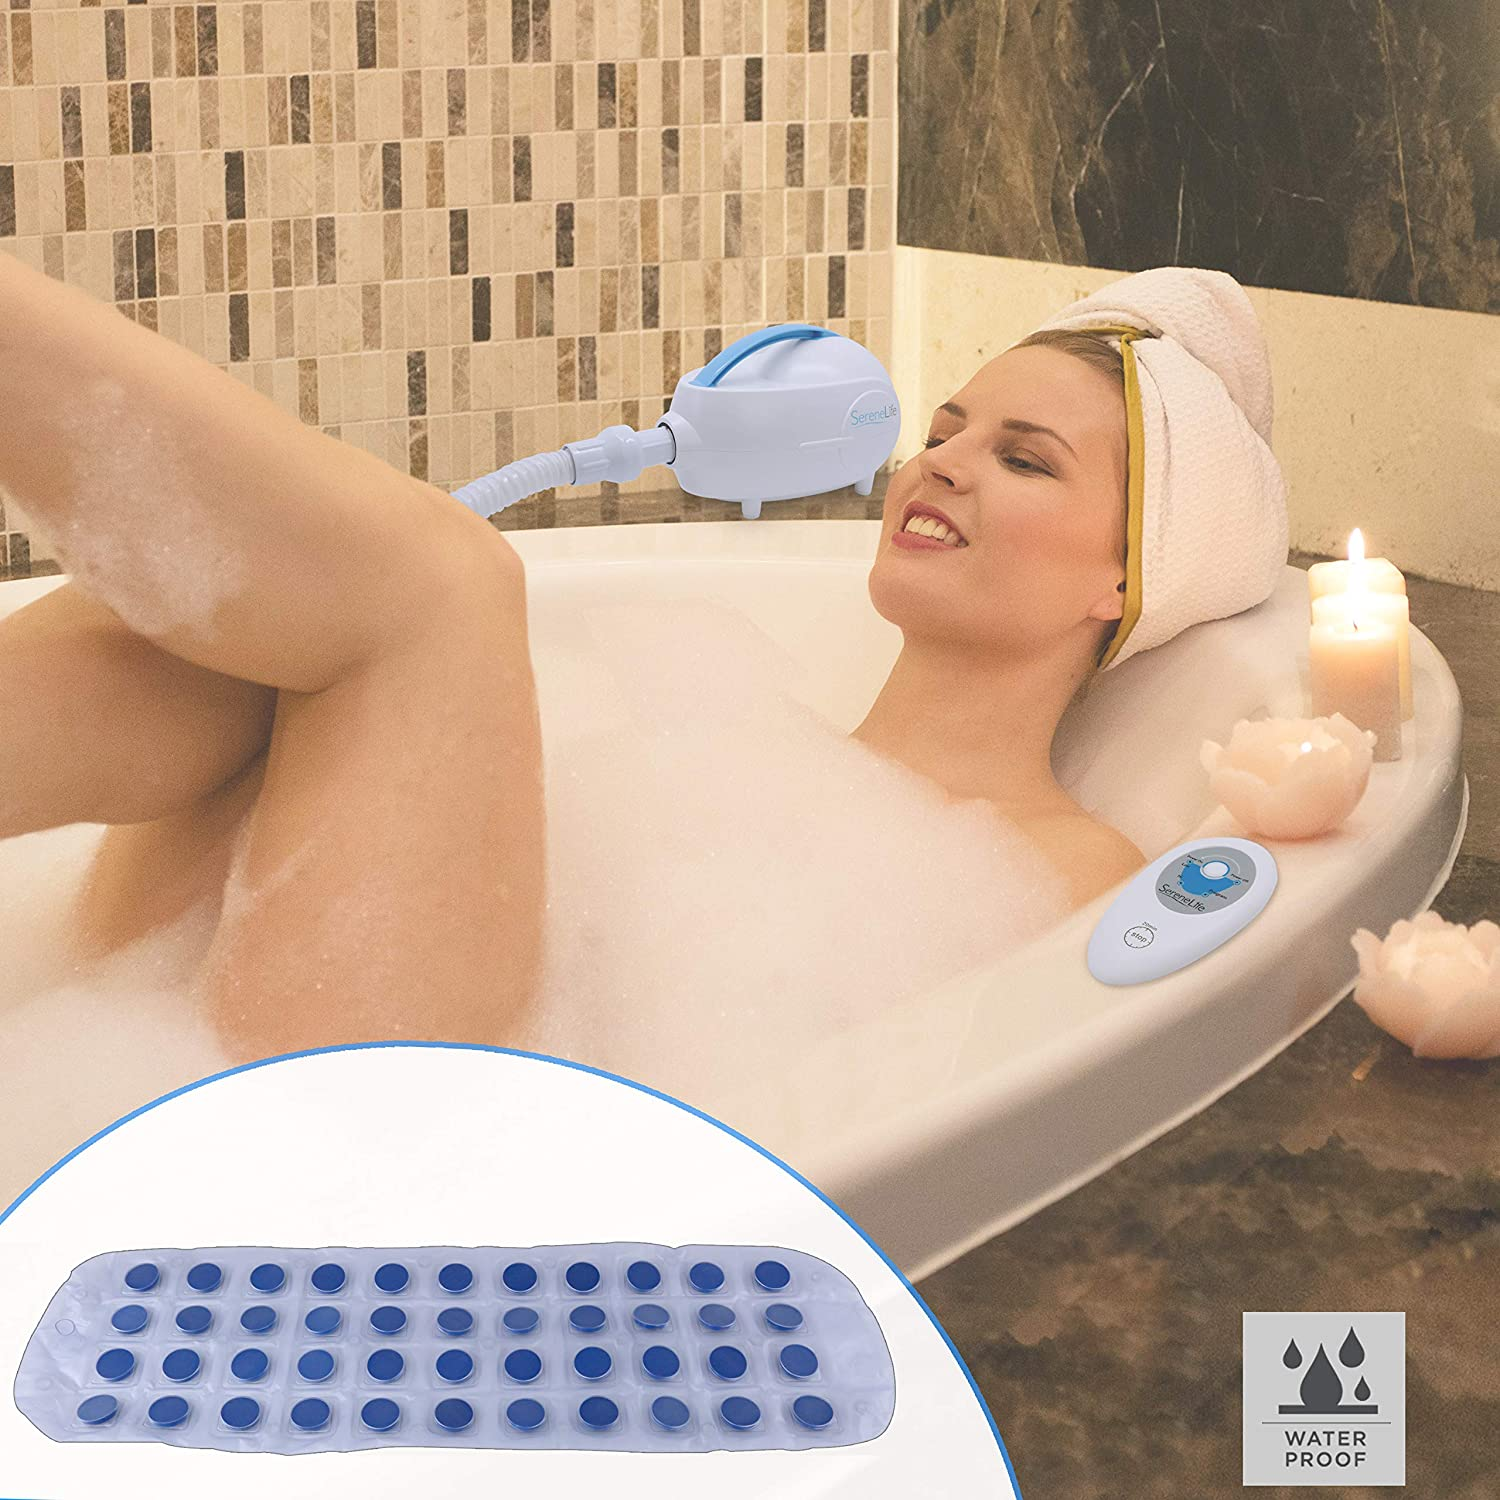 SereneLife Electric Bathtub Bubble Massage Mat Waterproof Tub Massaging Spa Full Body Bubbling Bath Thermal Massager Machine w Heat Motorized Air Pump Aroma Clip for Essential Oi